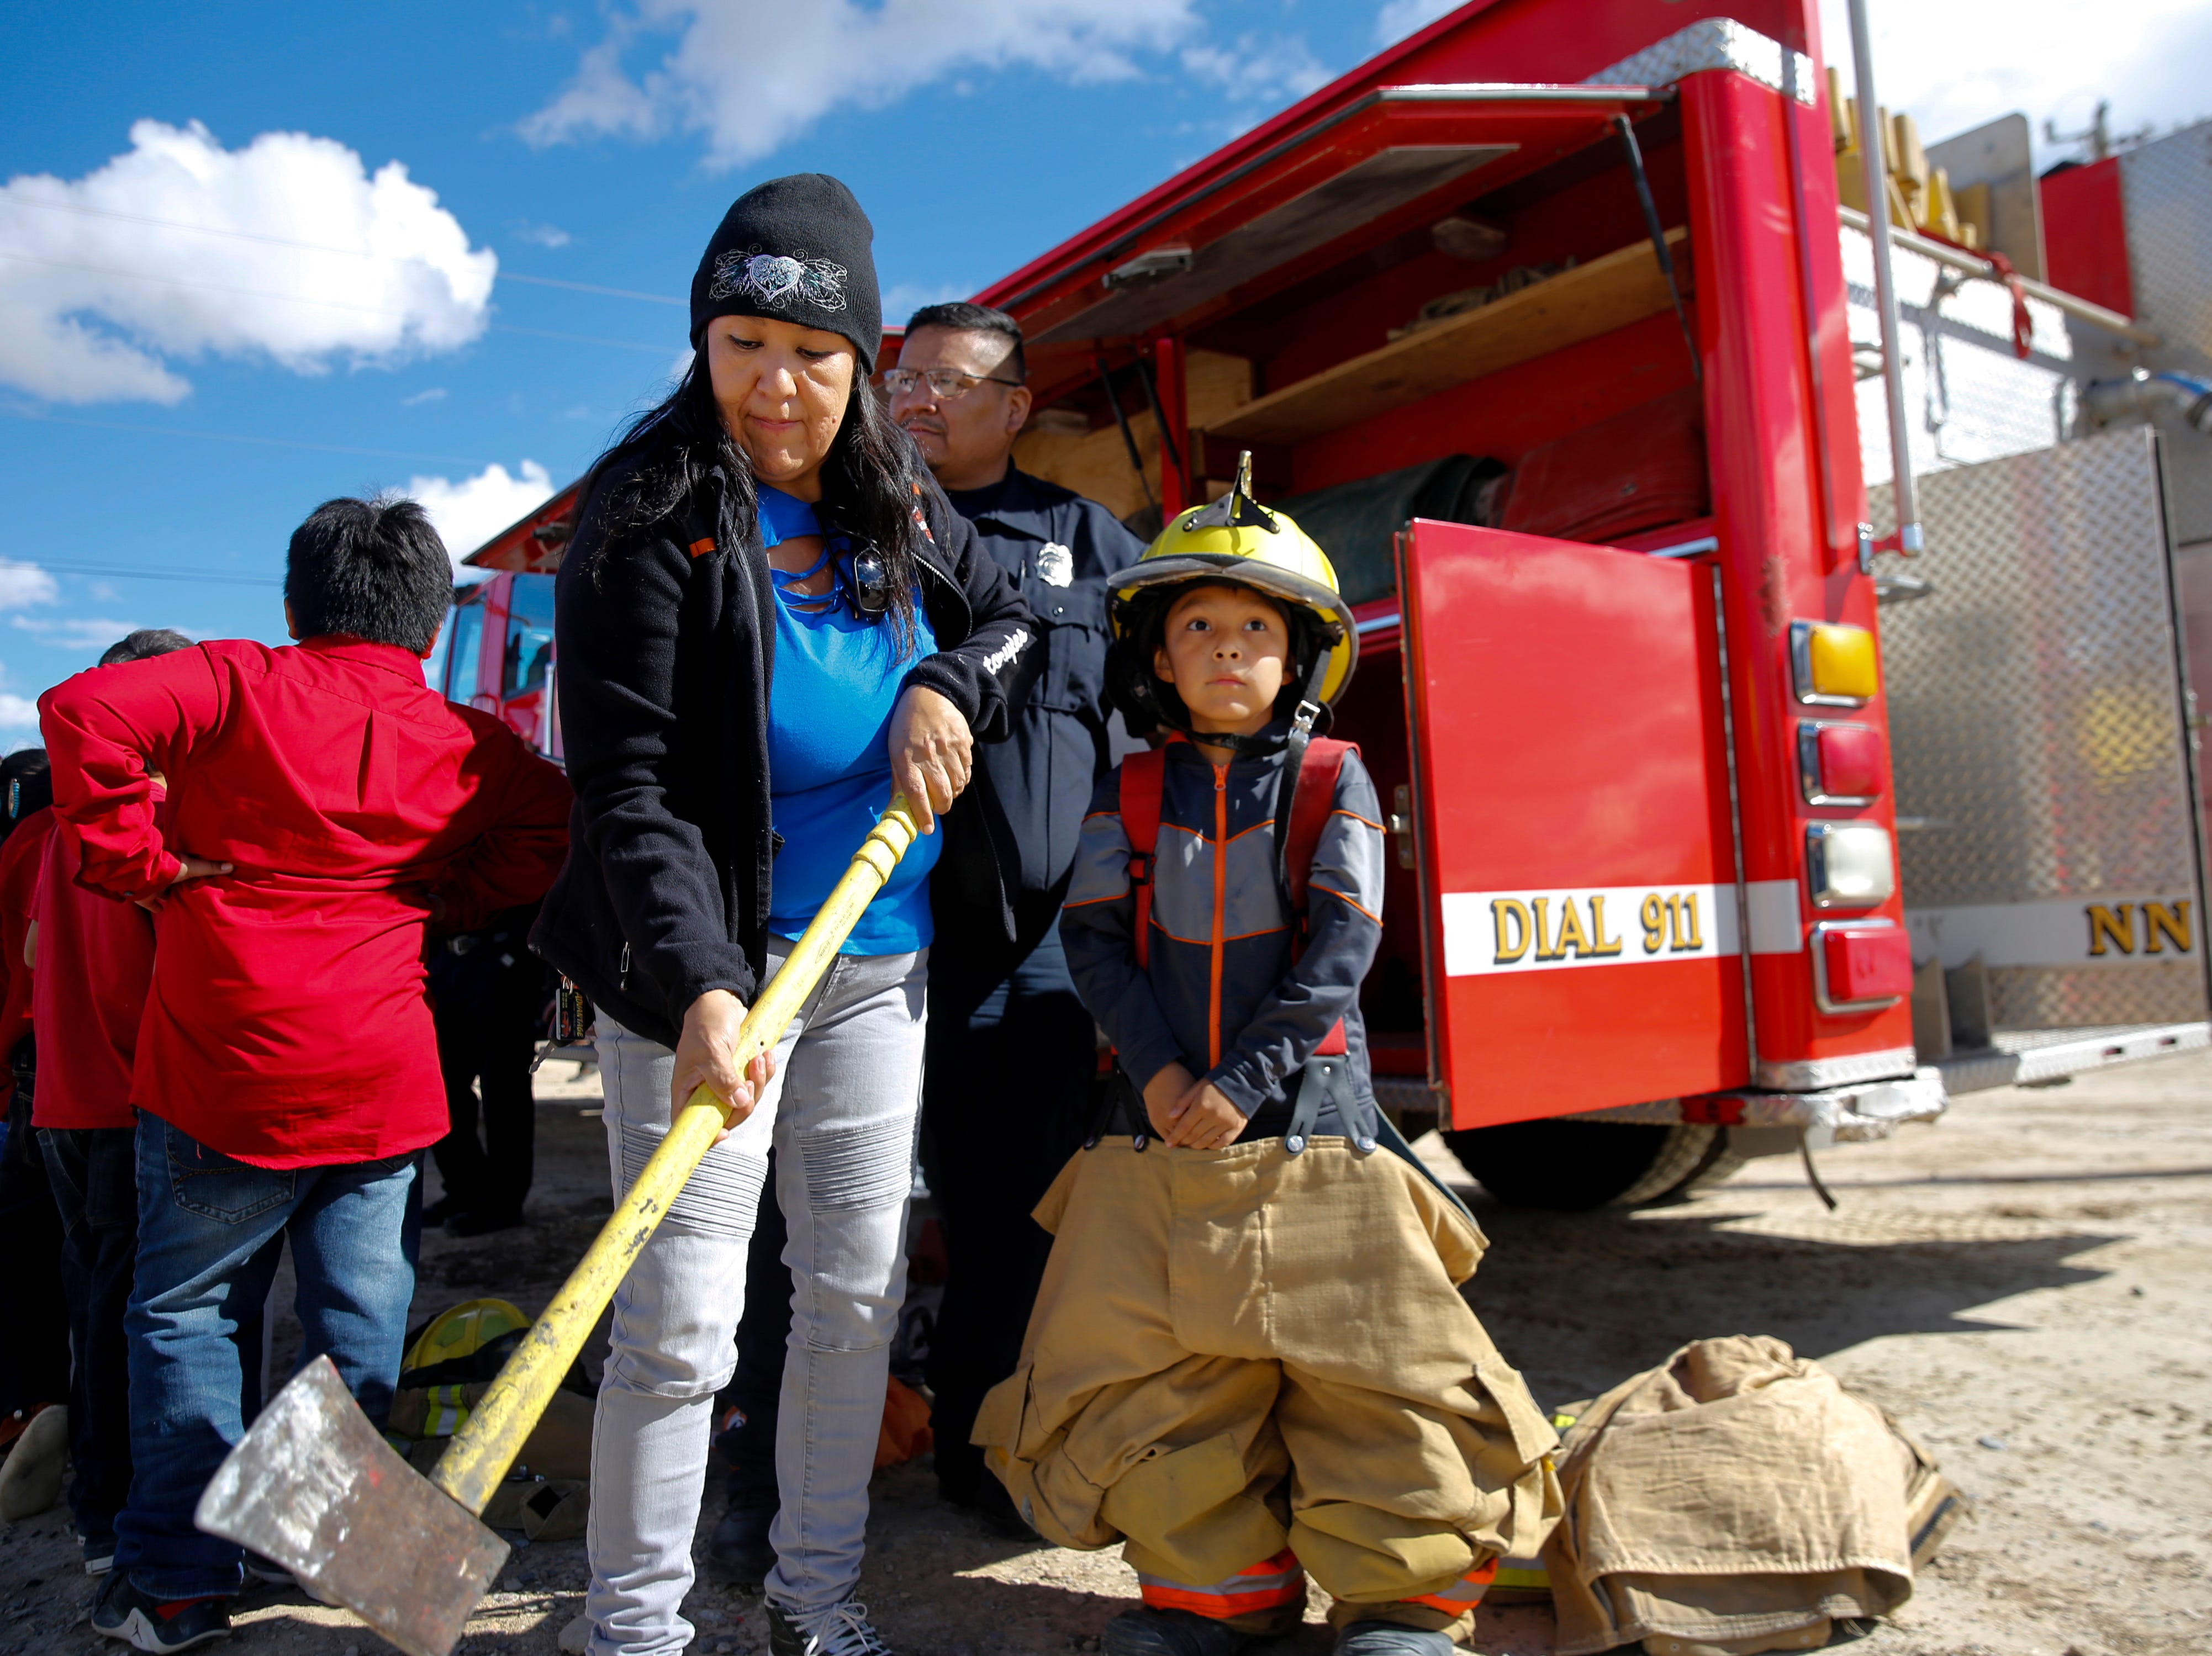 From left, Brenda Tabaha examines an ax used by members of the Navajo Nation Fire Department as her son Isaiah Tabaha, 7,  tries on firefighting gear, Thursday, Oct. 4, 2018 during the Northern Navajo Nation Fair in Shiprock.